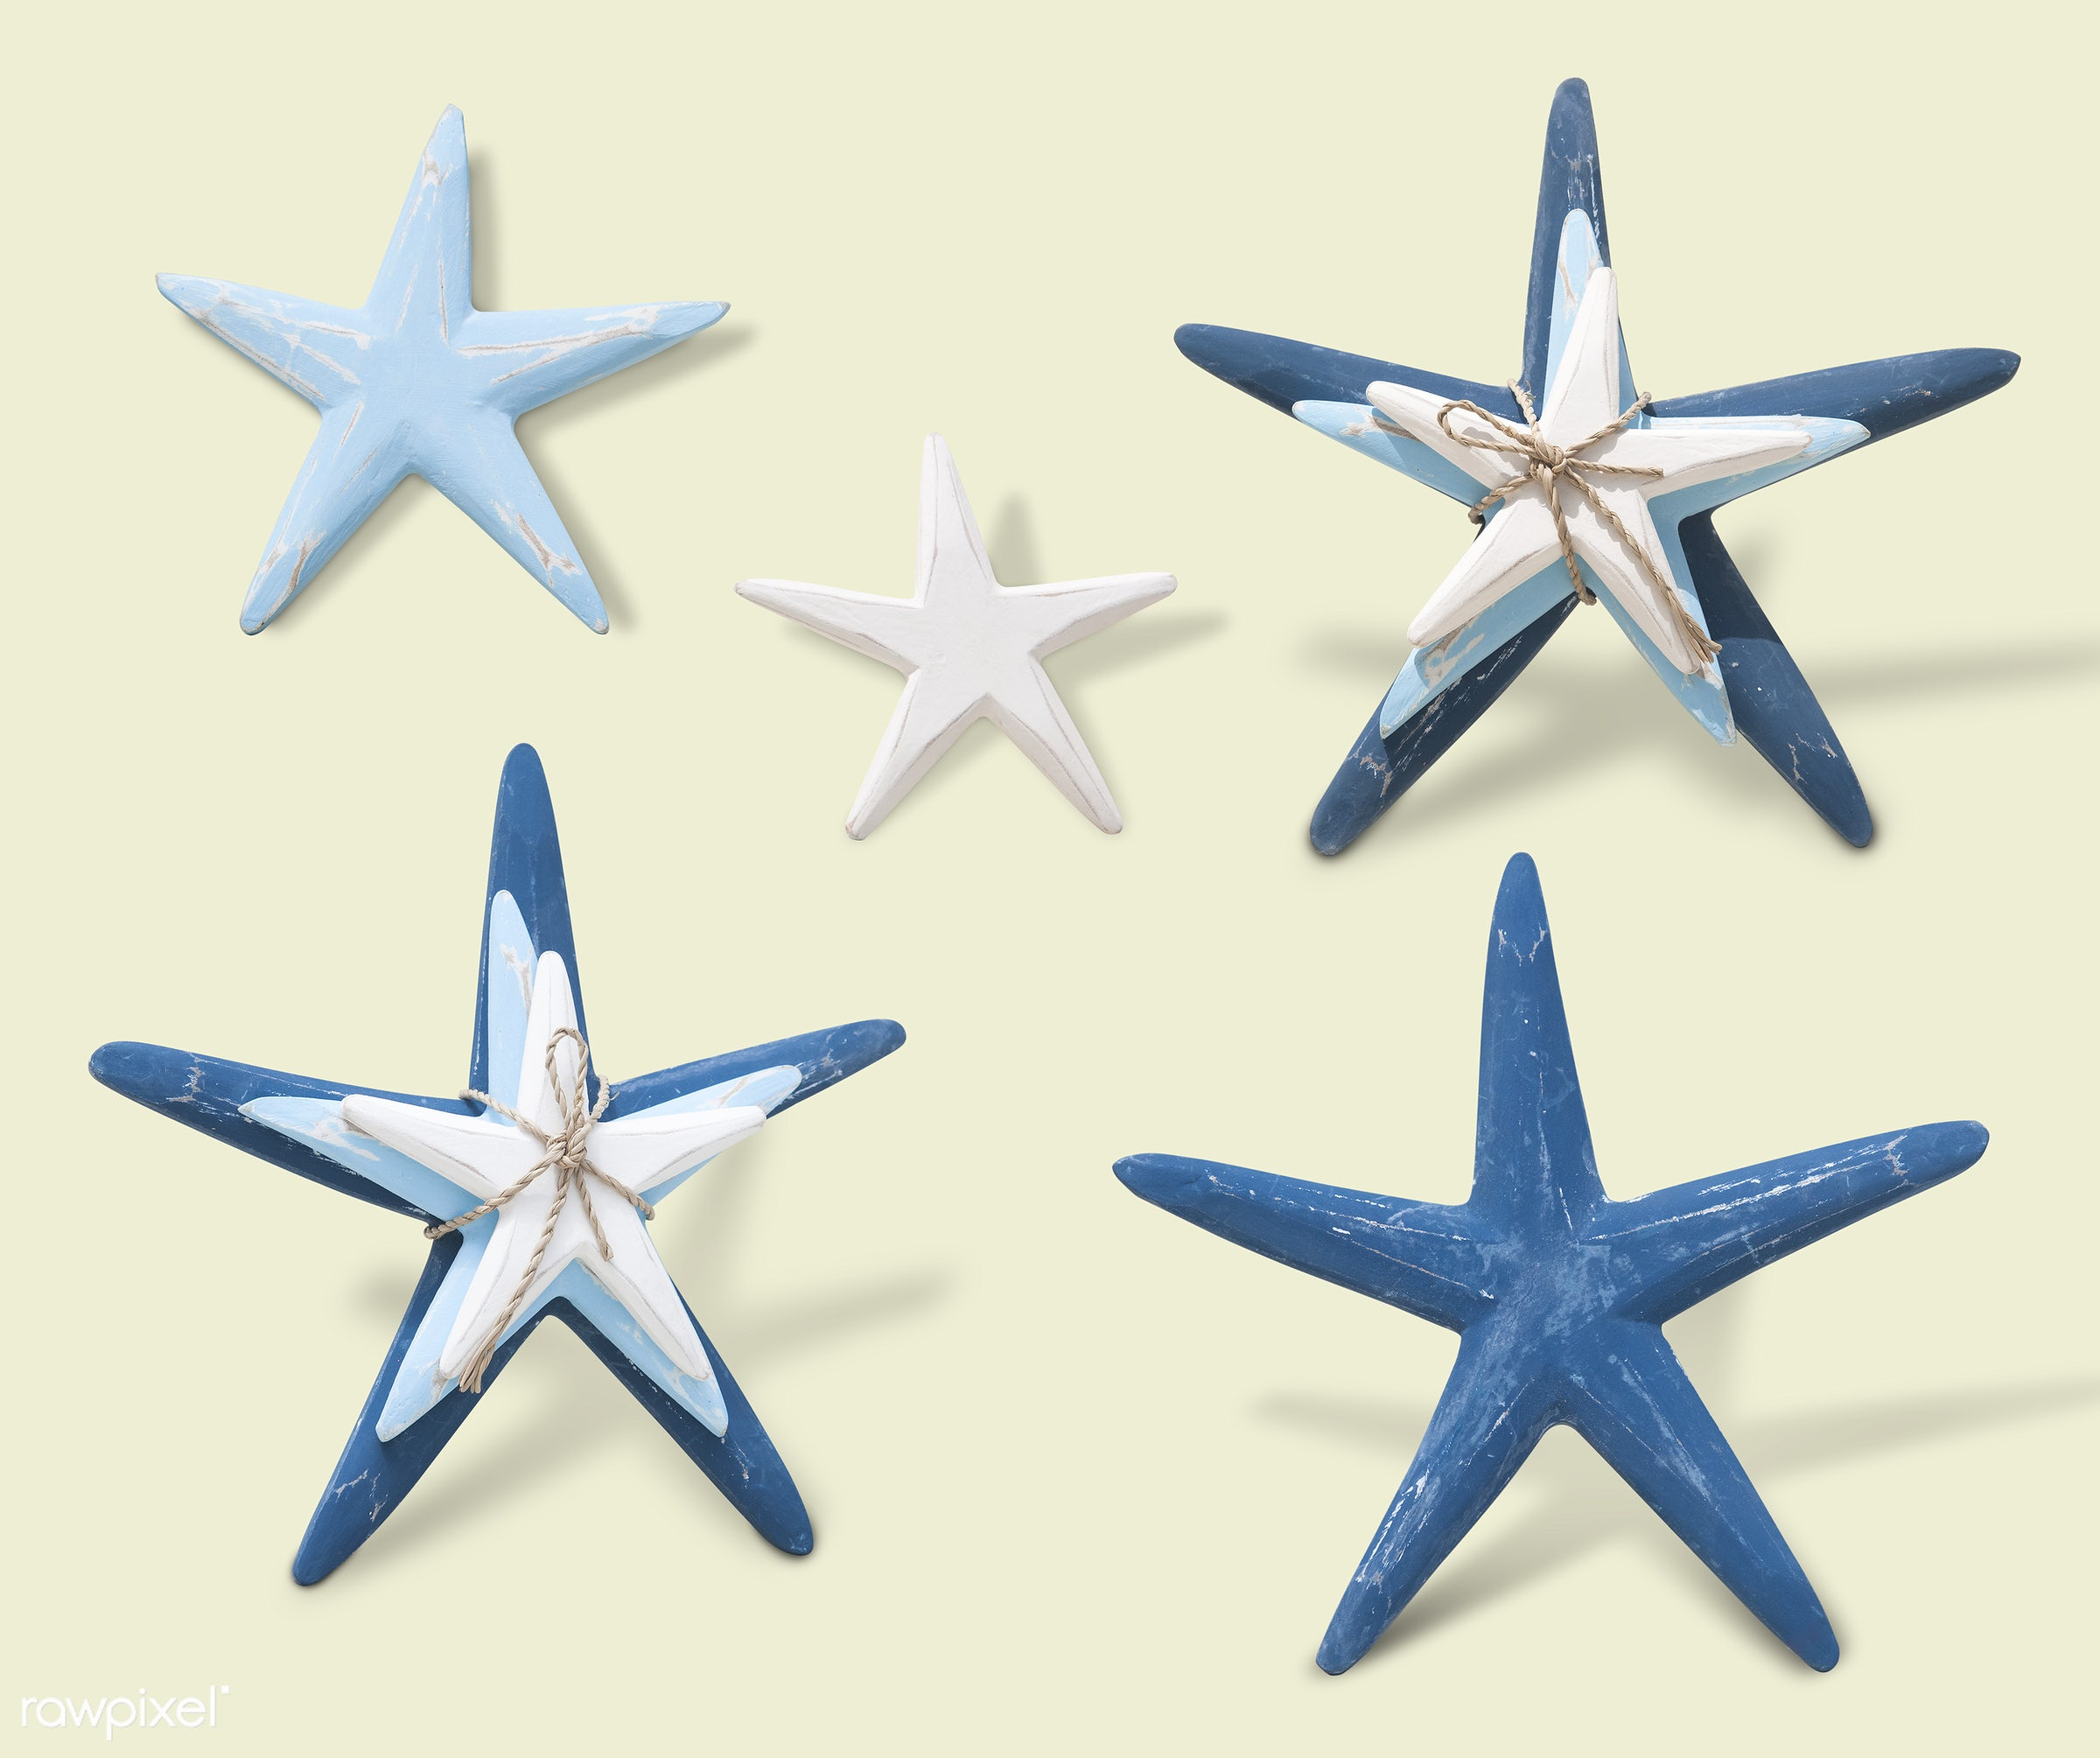 biology, creature, fish, group, isolated, sea, sea creature, shape, star shape, starfish